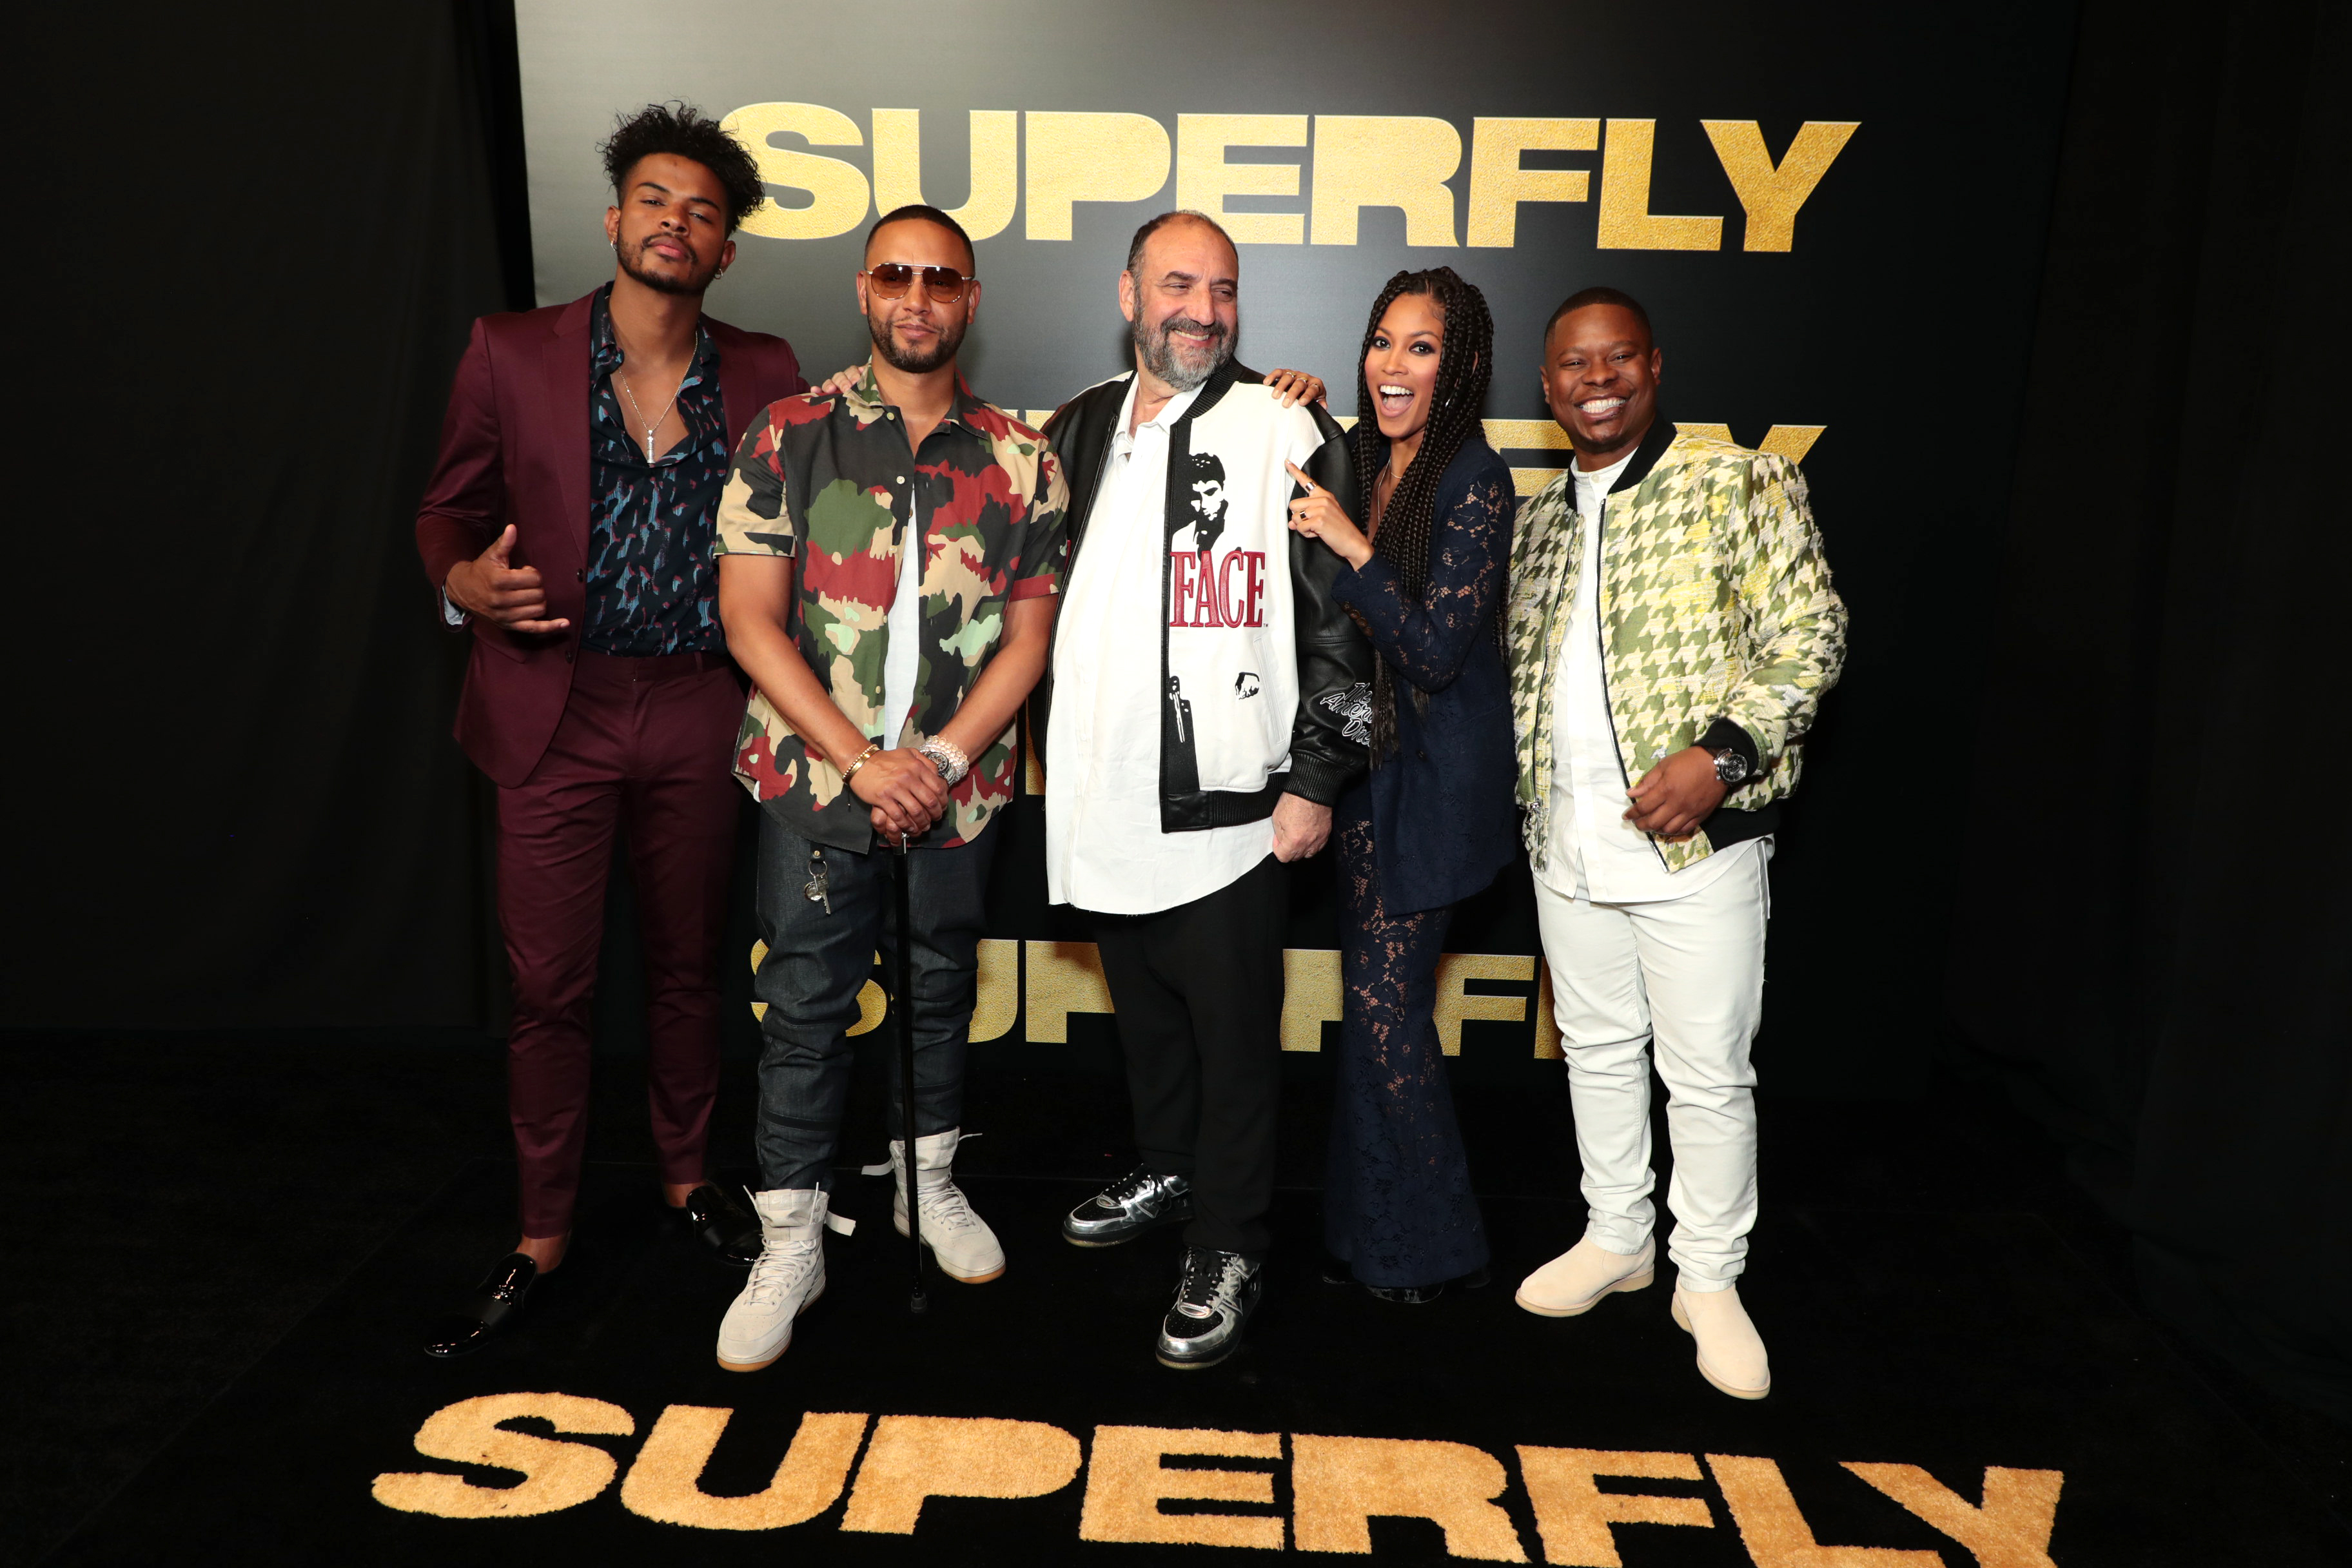 f1ac399f6 SUPERFLY - Interview with Canadian Legend Director X - Mohit s Movies